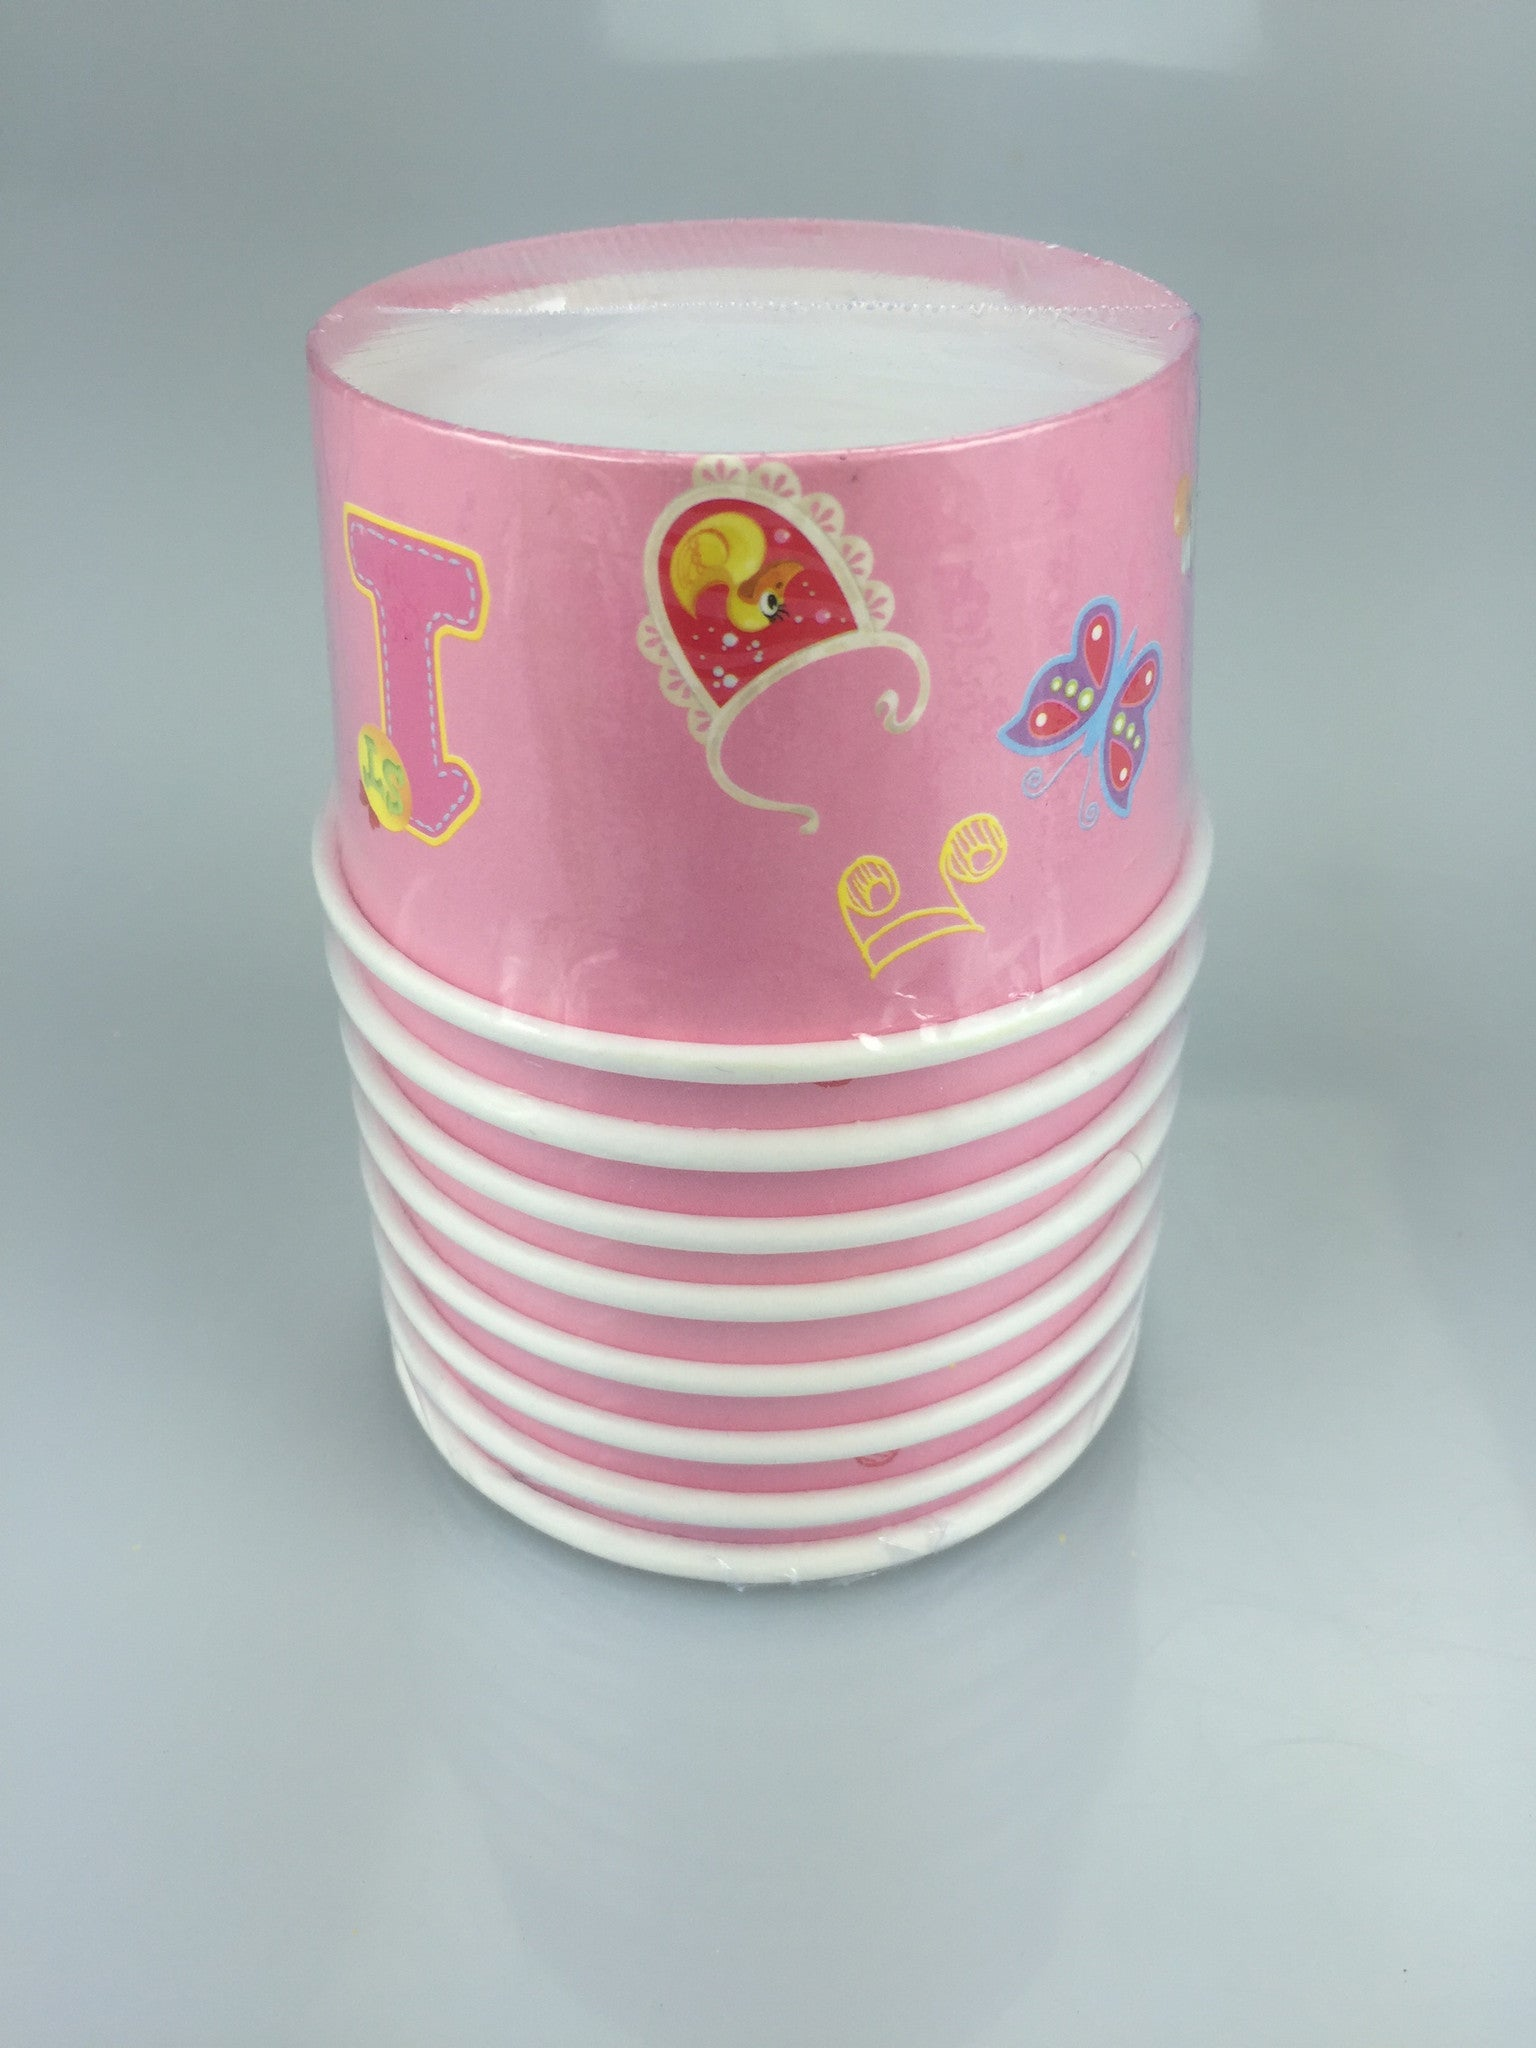 1ST BIRTHDAY GIRL ICE CREAM CUP 8PC